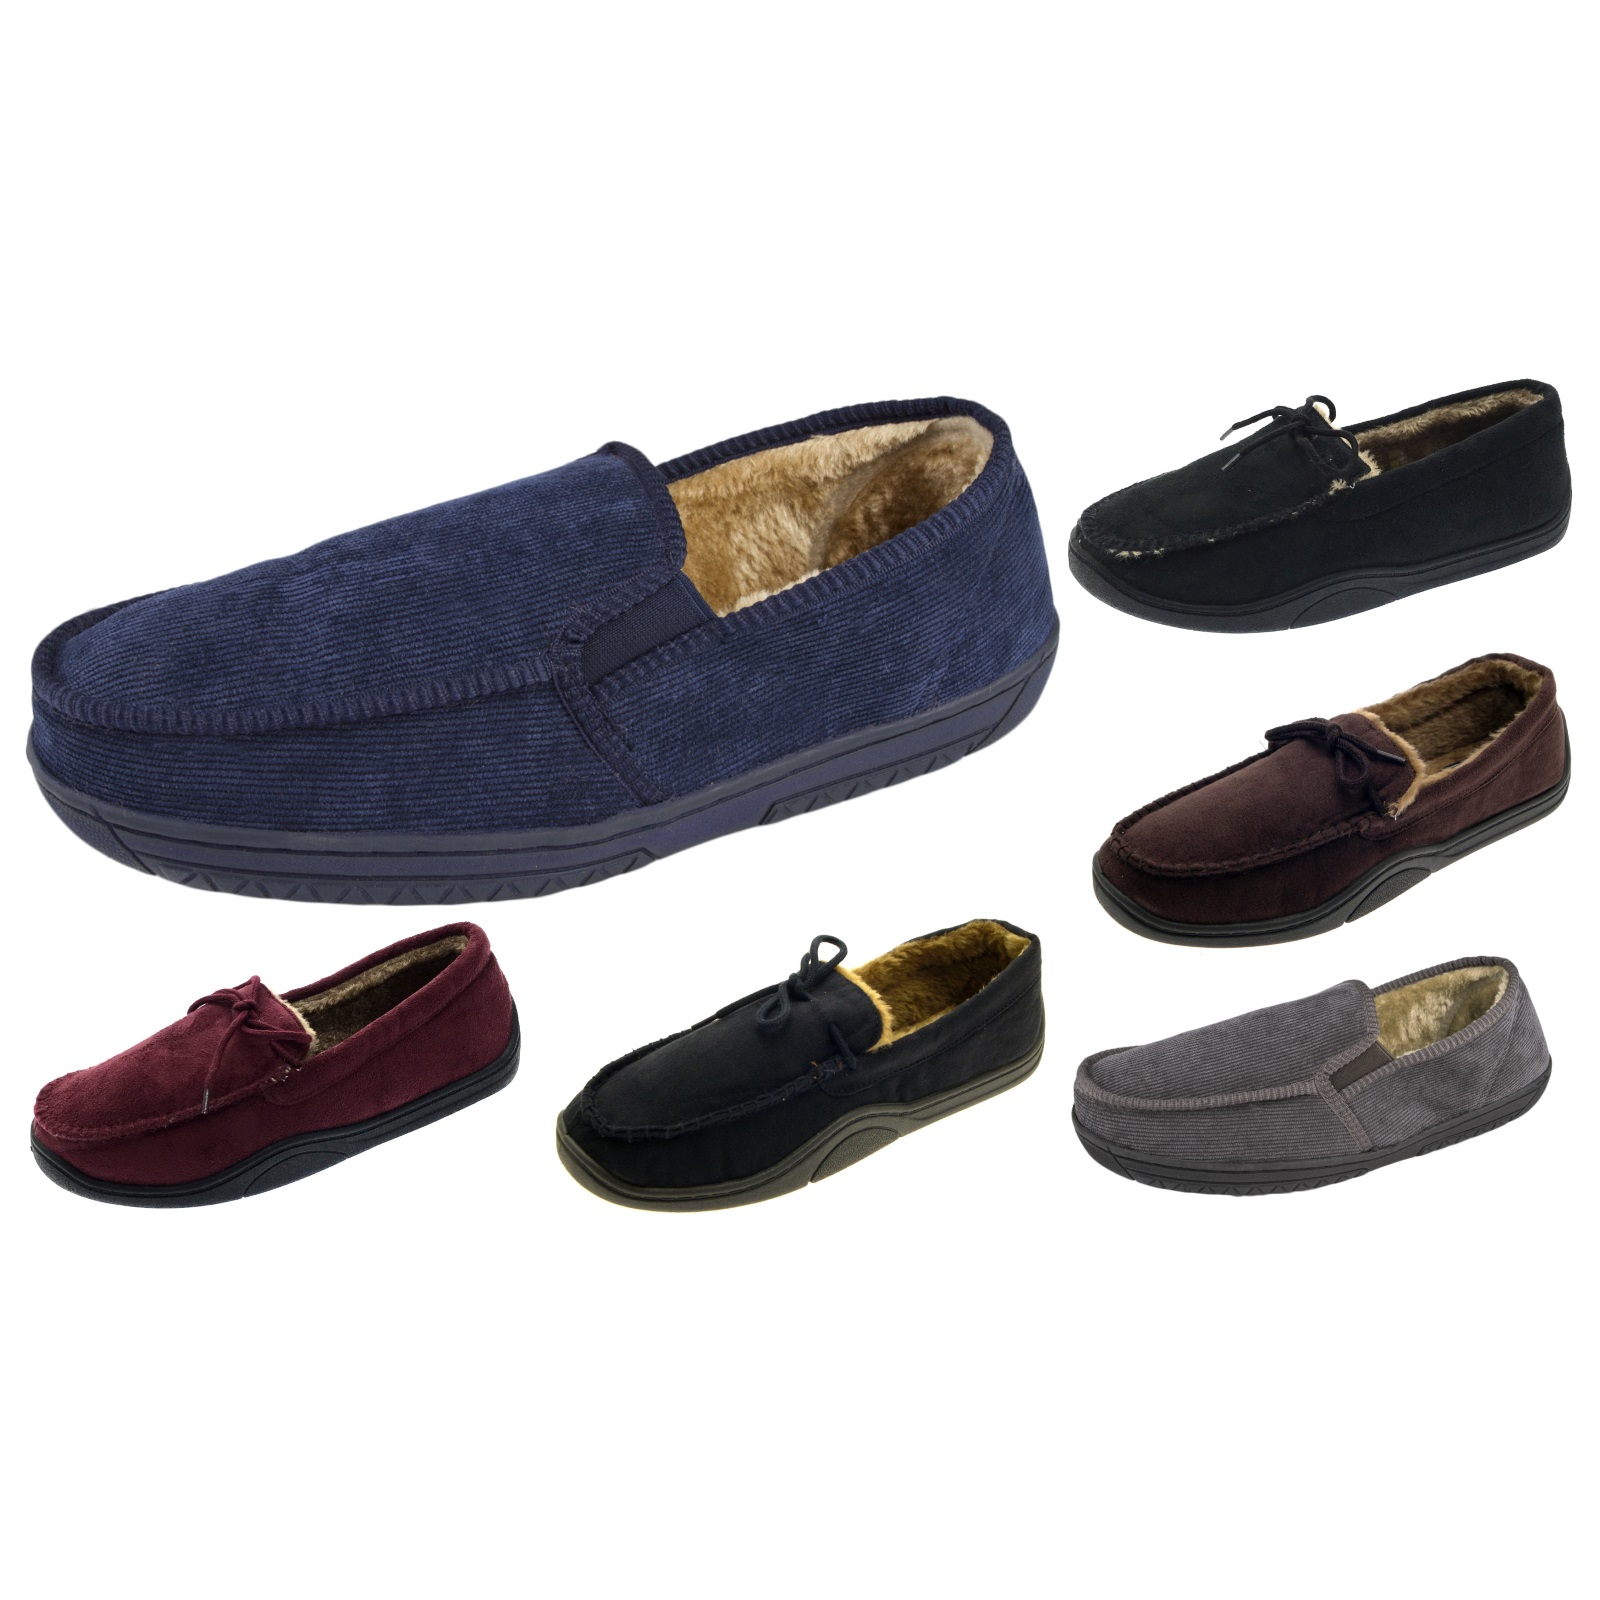 3ebfb6c6687312 Mens Warm Slippers Moccasins Faux Suede Corduroy Sheepskin Fur Lined Shoes  Size